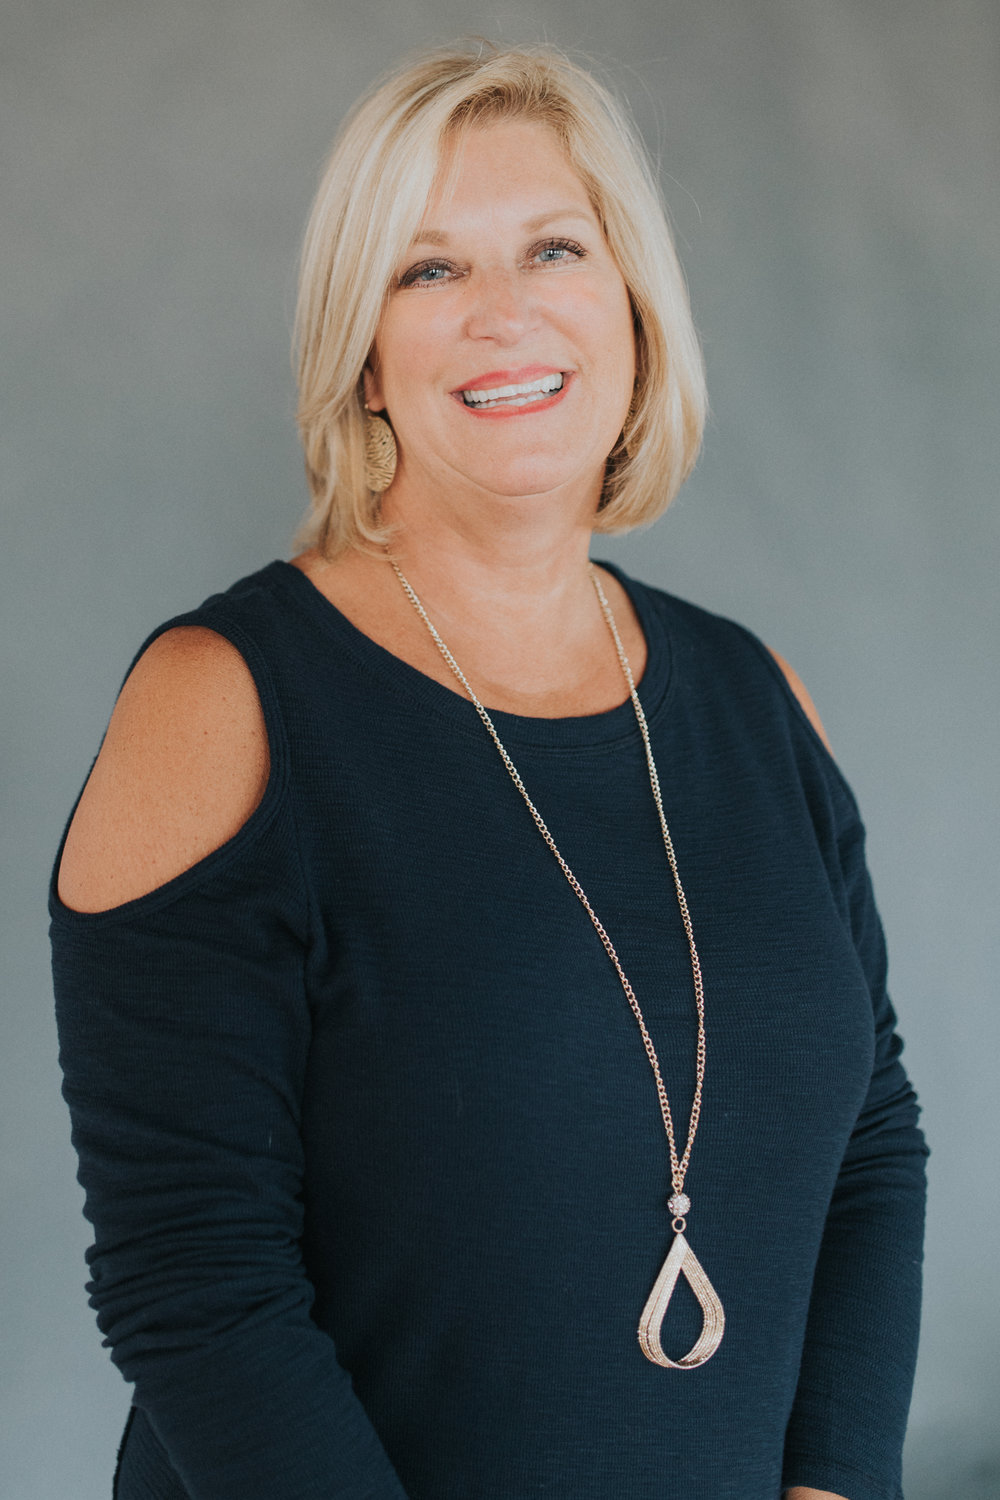 Terry Selgo, R.N. - Terry carries 14 years of advanced injection technique experience. She is one of the most proficient, and recognizable injectors in Grand Rapids, Michigan.She has perfect the art of facial transformation using injectables such as Botox® Cosmetic, Juvéderm®, Voluma®, and Kybella®. Terry is passionate about providing her clients with genuine care and attention to aesthetic detail. She will make you feel at ease with her warm demeanor and consultative skills.